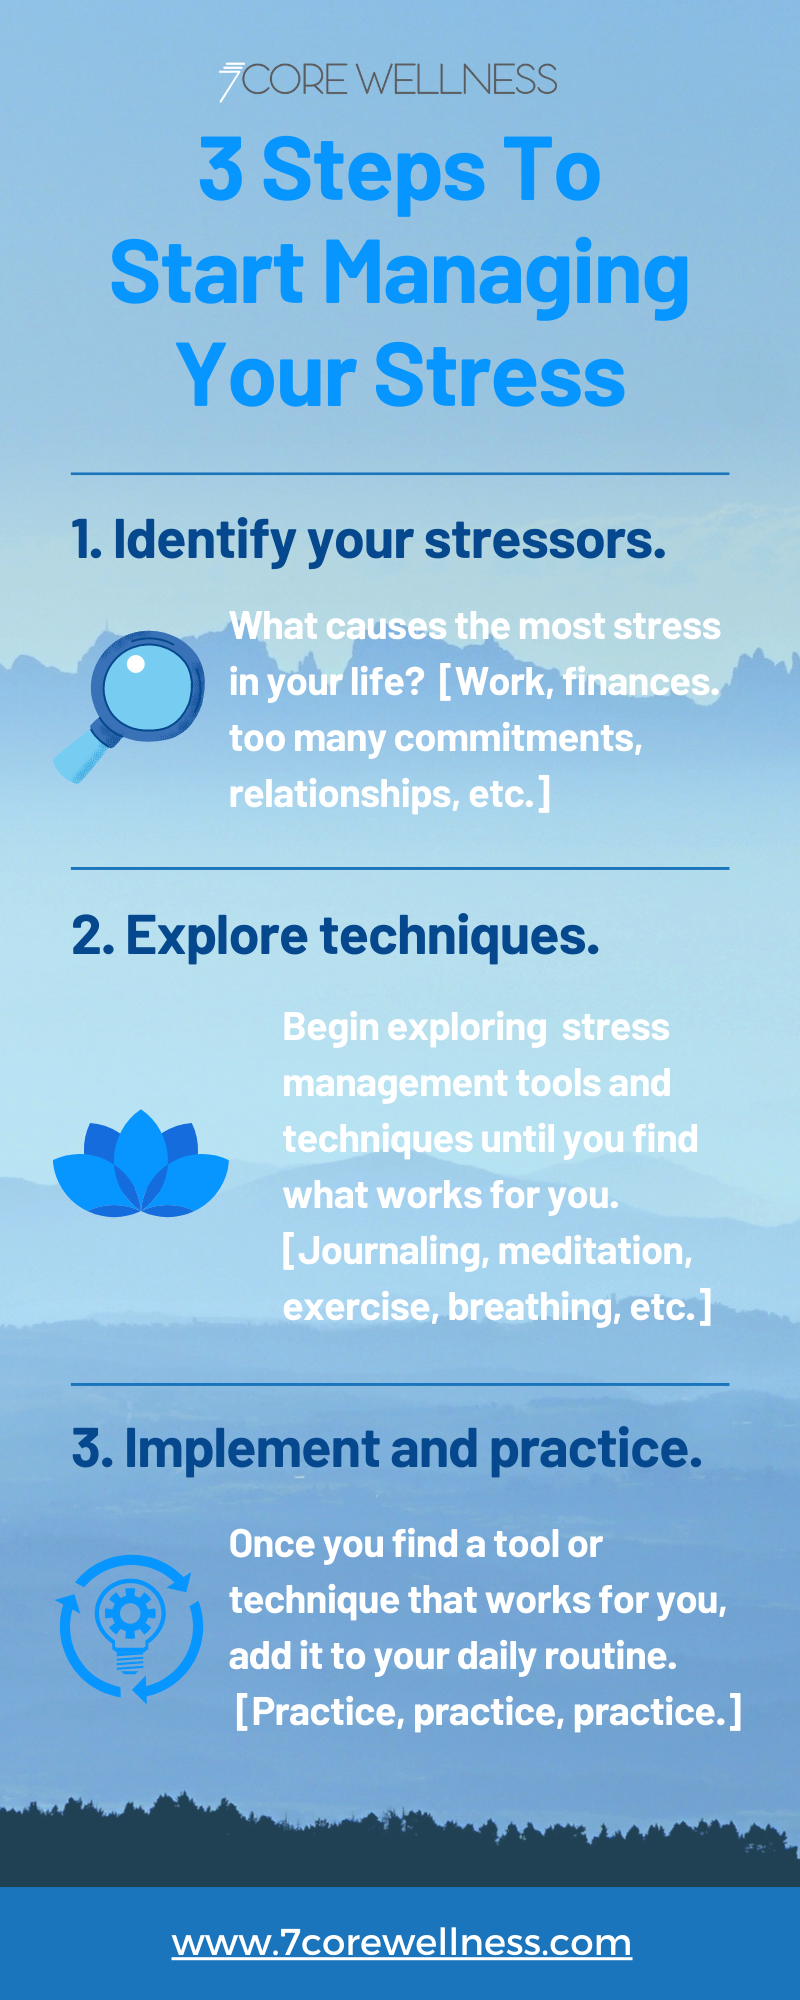 Infographic with 3 steps on starting to manage stress.